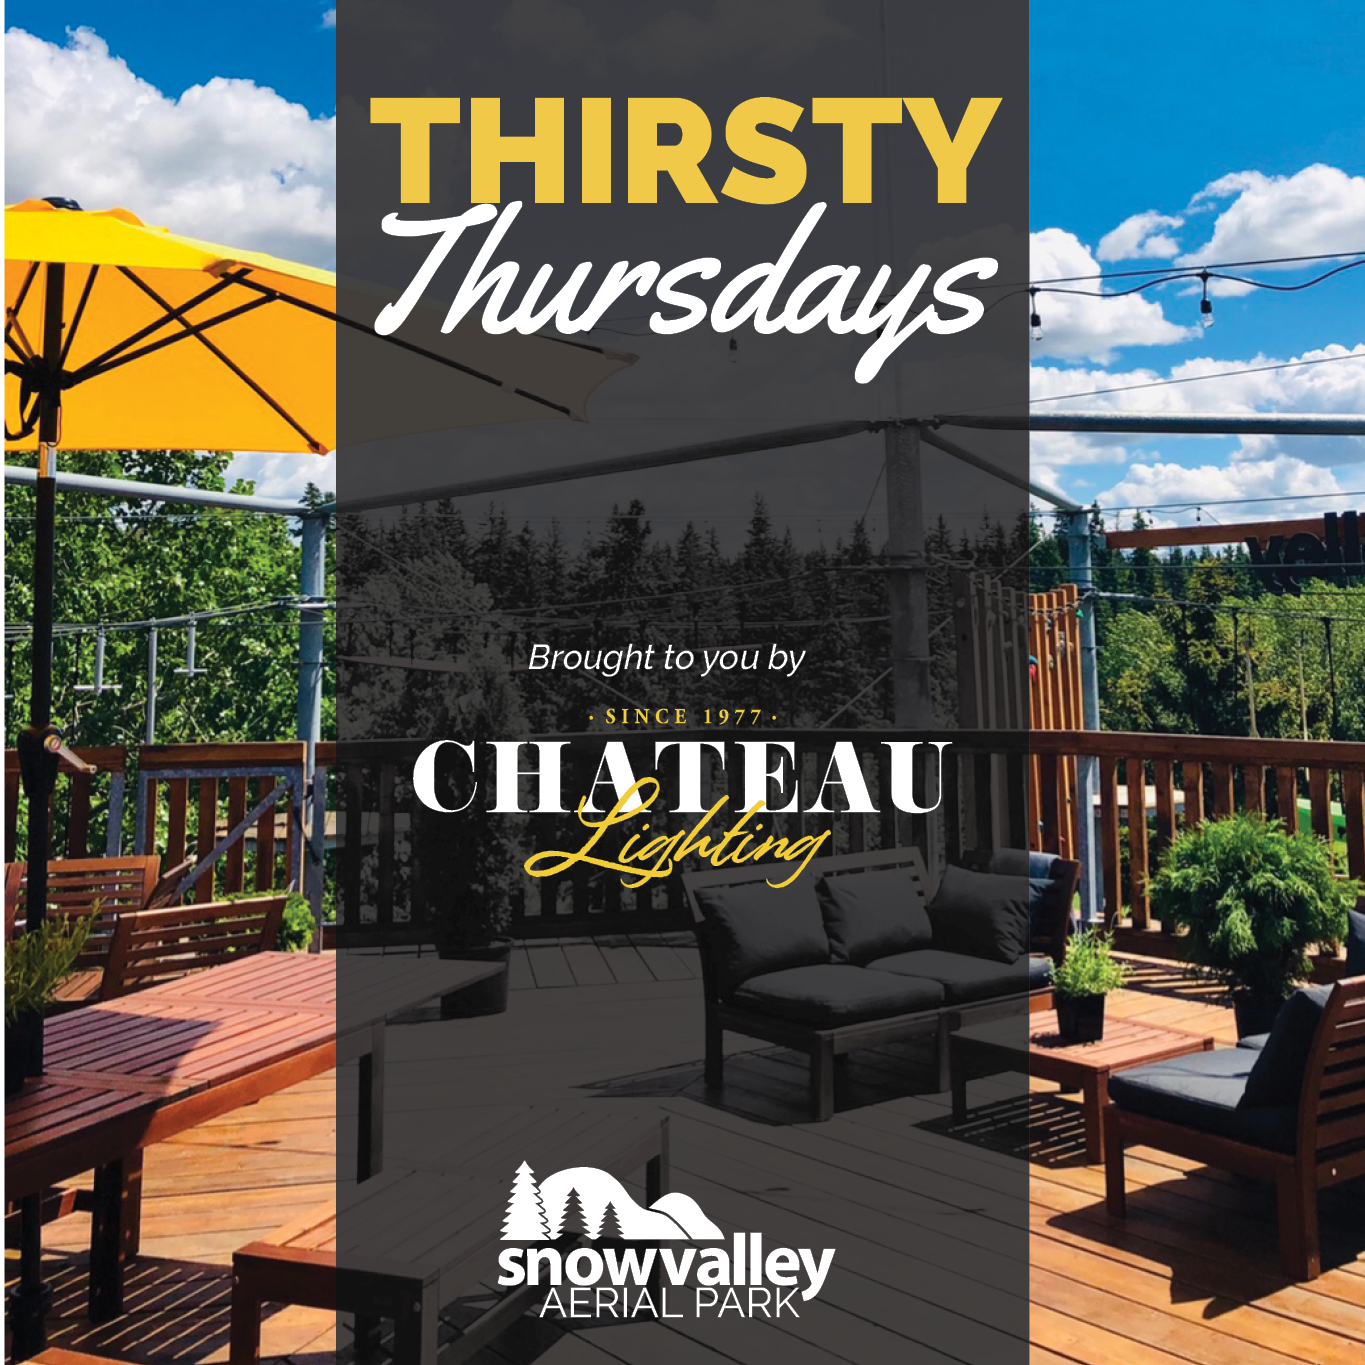 Thirsty Thursdays Return